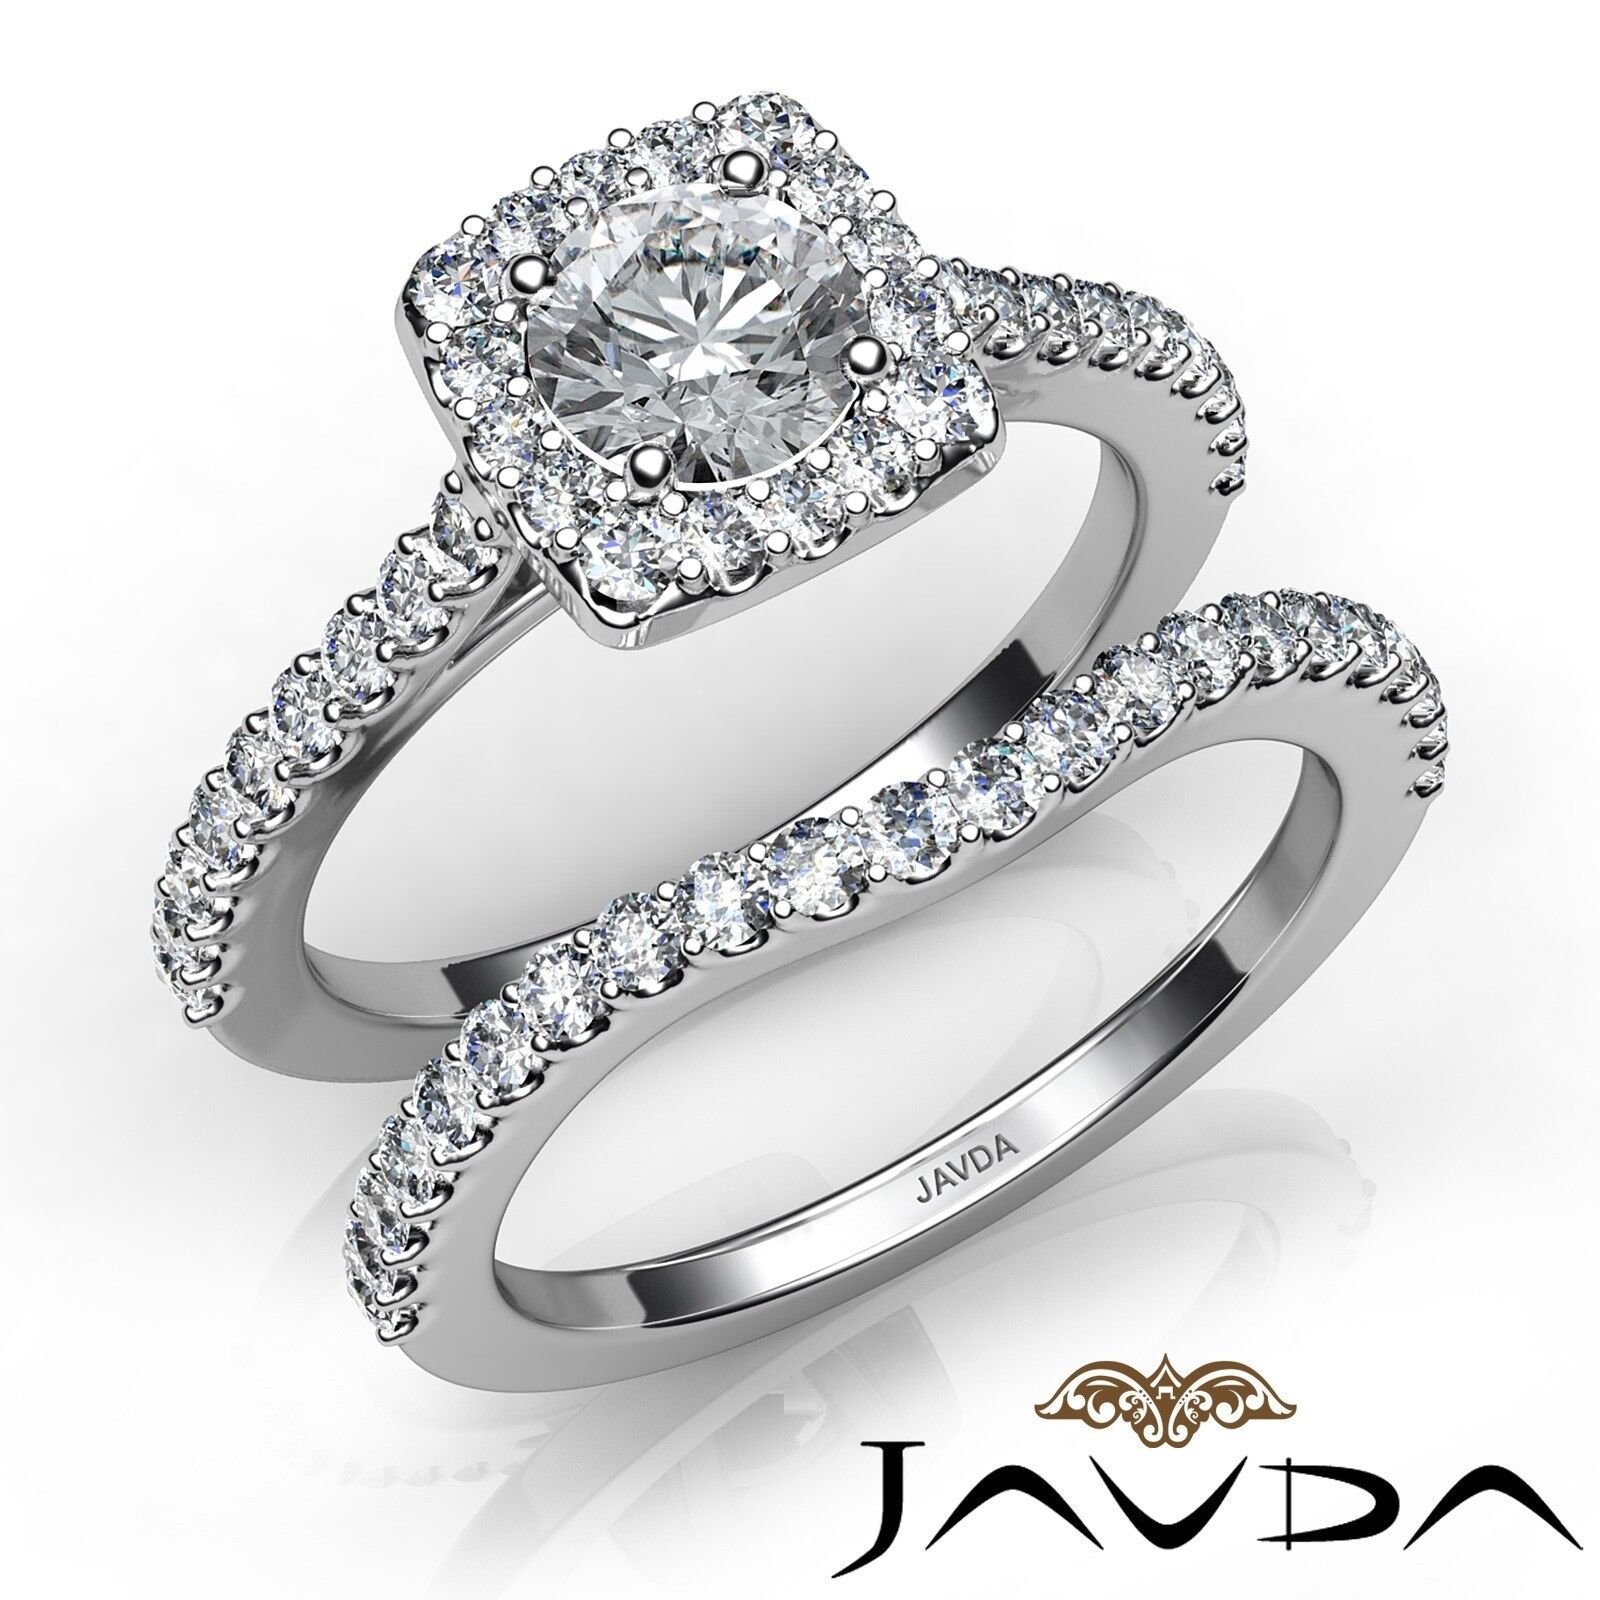 1.7ct Halo U Prong Bridal Set Round Diamond Engagement Ring GIA H-VS1 White Gold